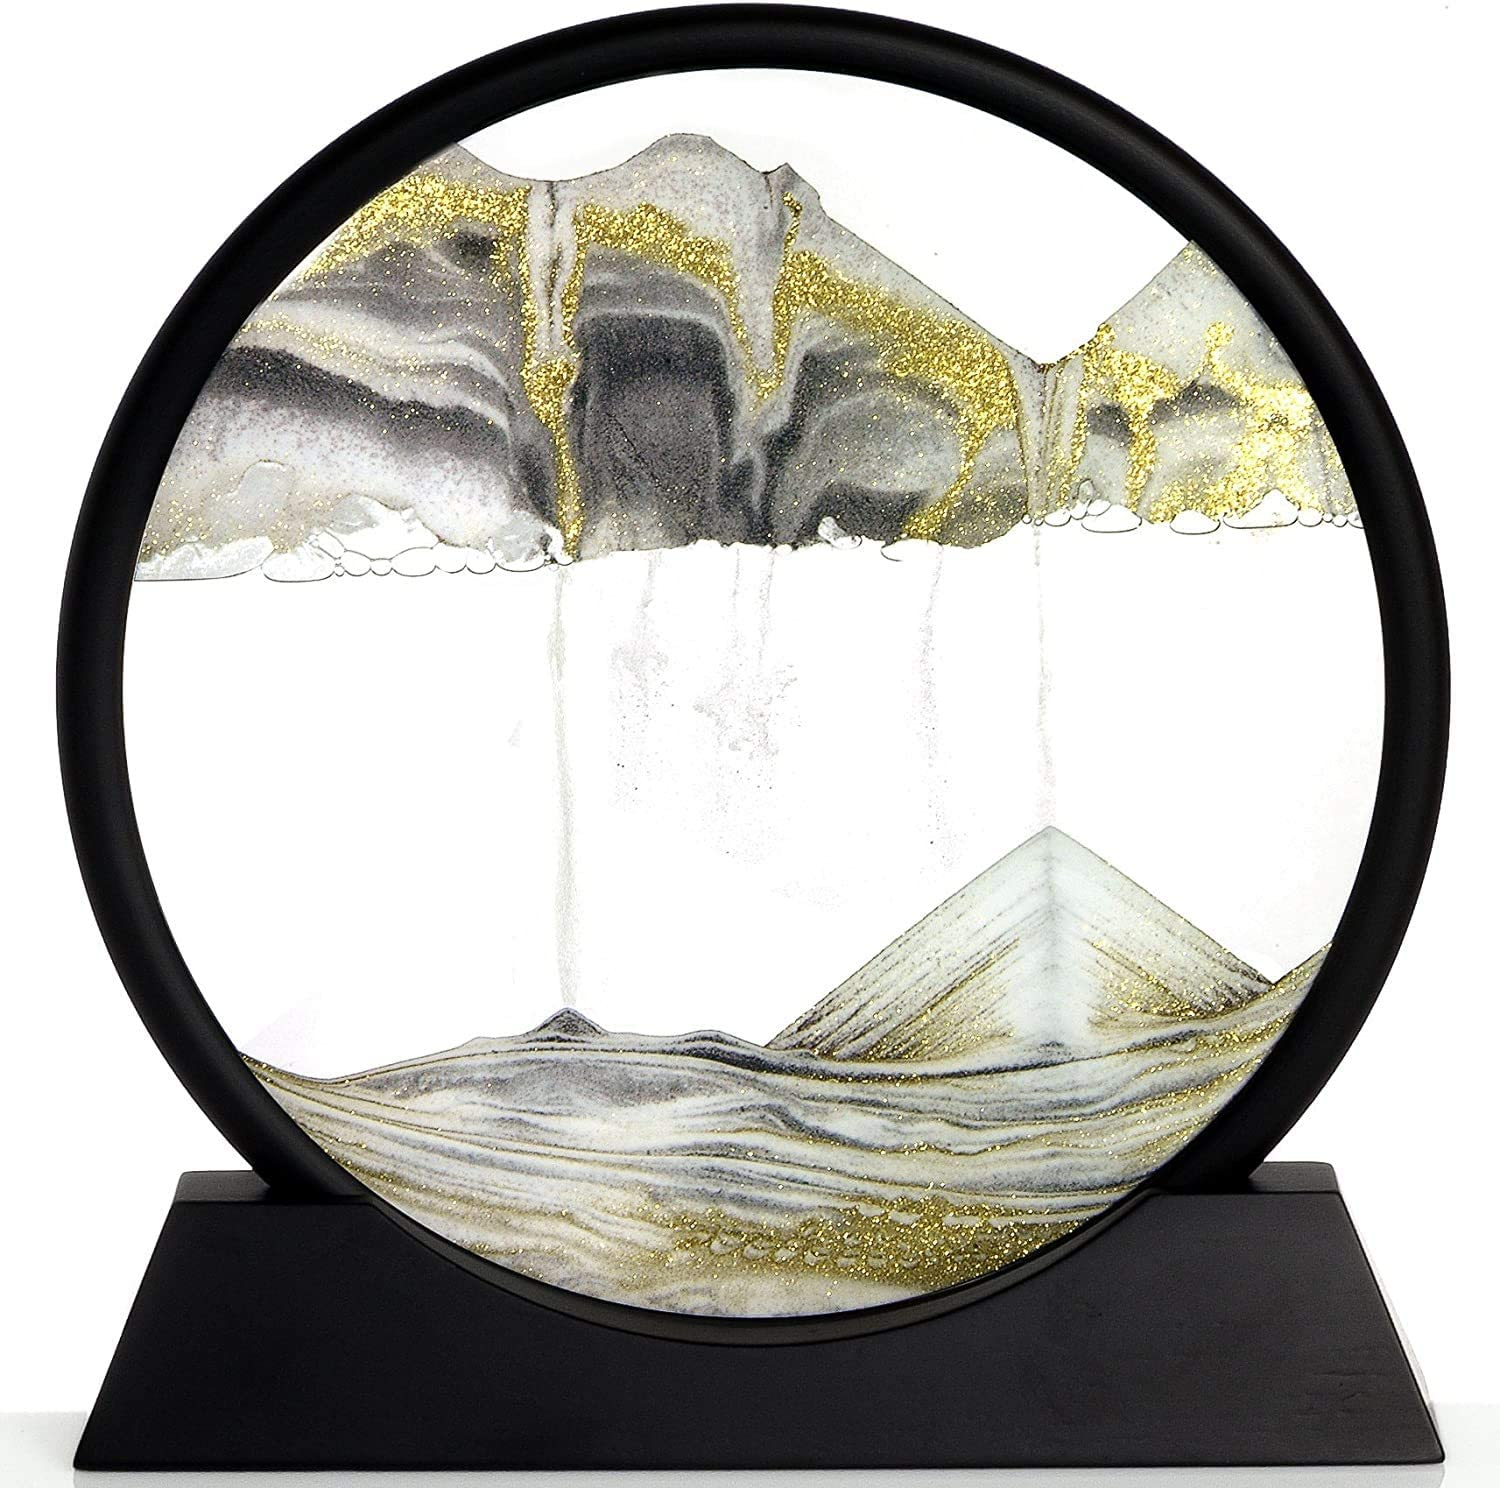 LZHNB Dynamic Sand Picture,Moving Sand Art Picture Round Glass 3D Deep Sea Sandscape in Motion Display (Black and white)